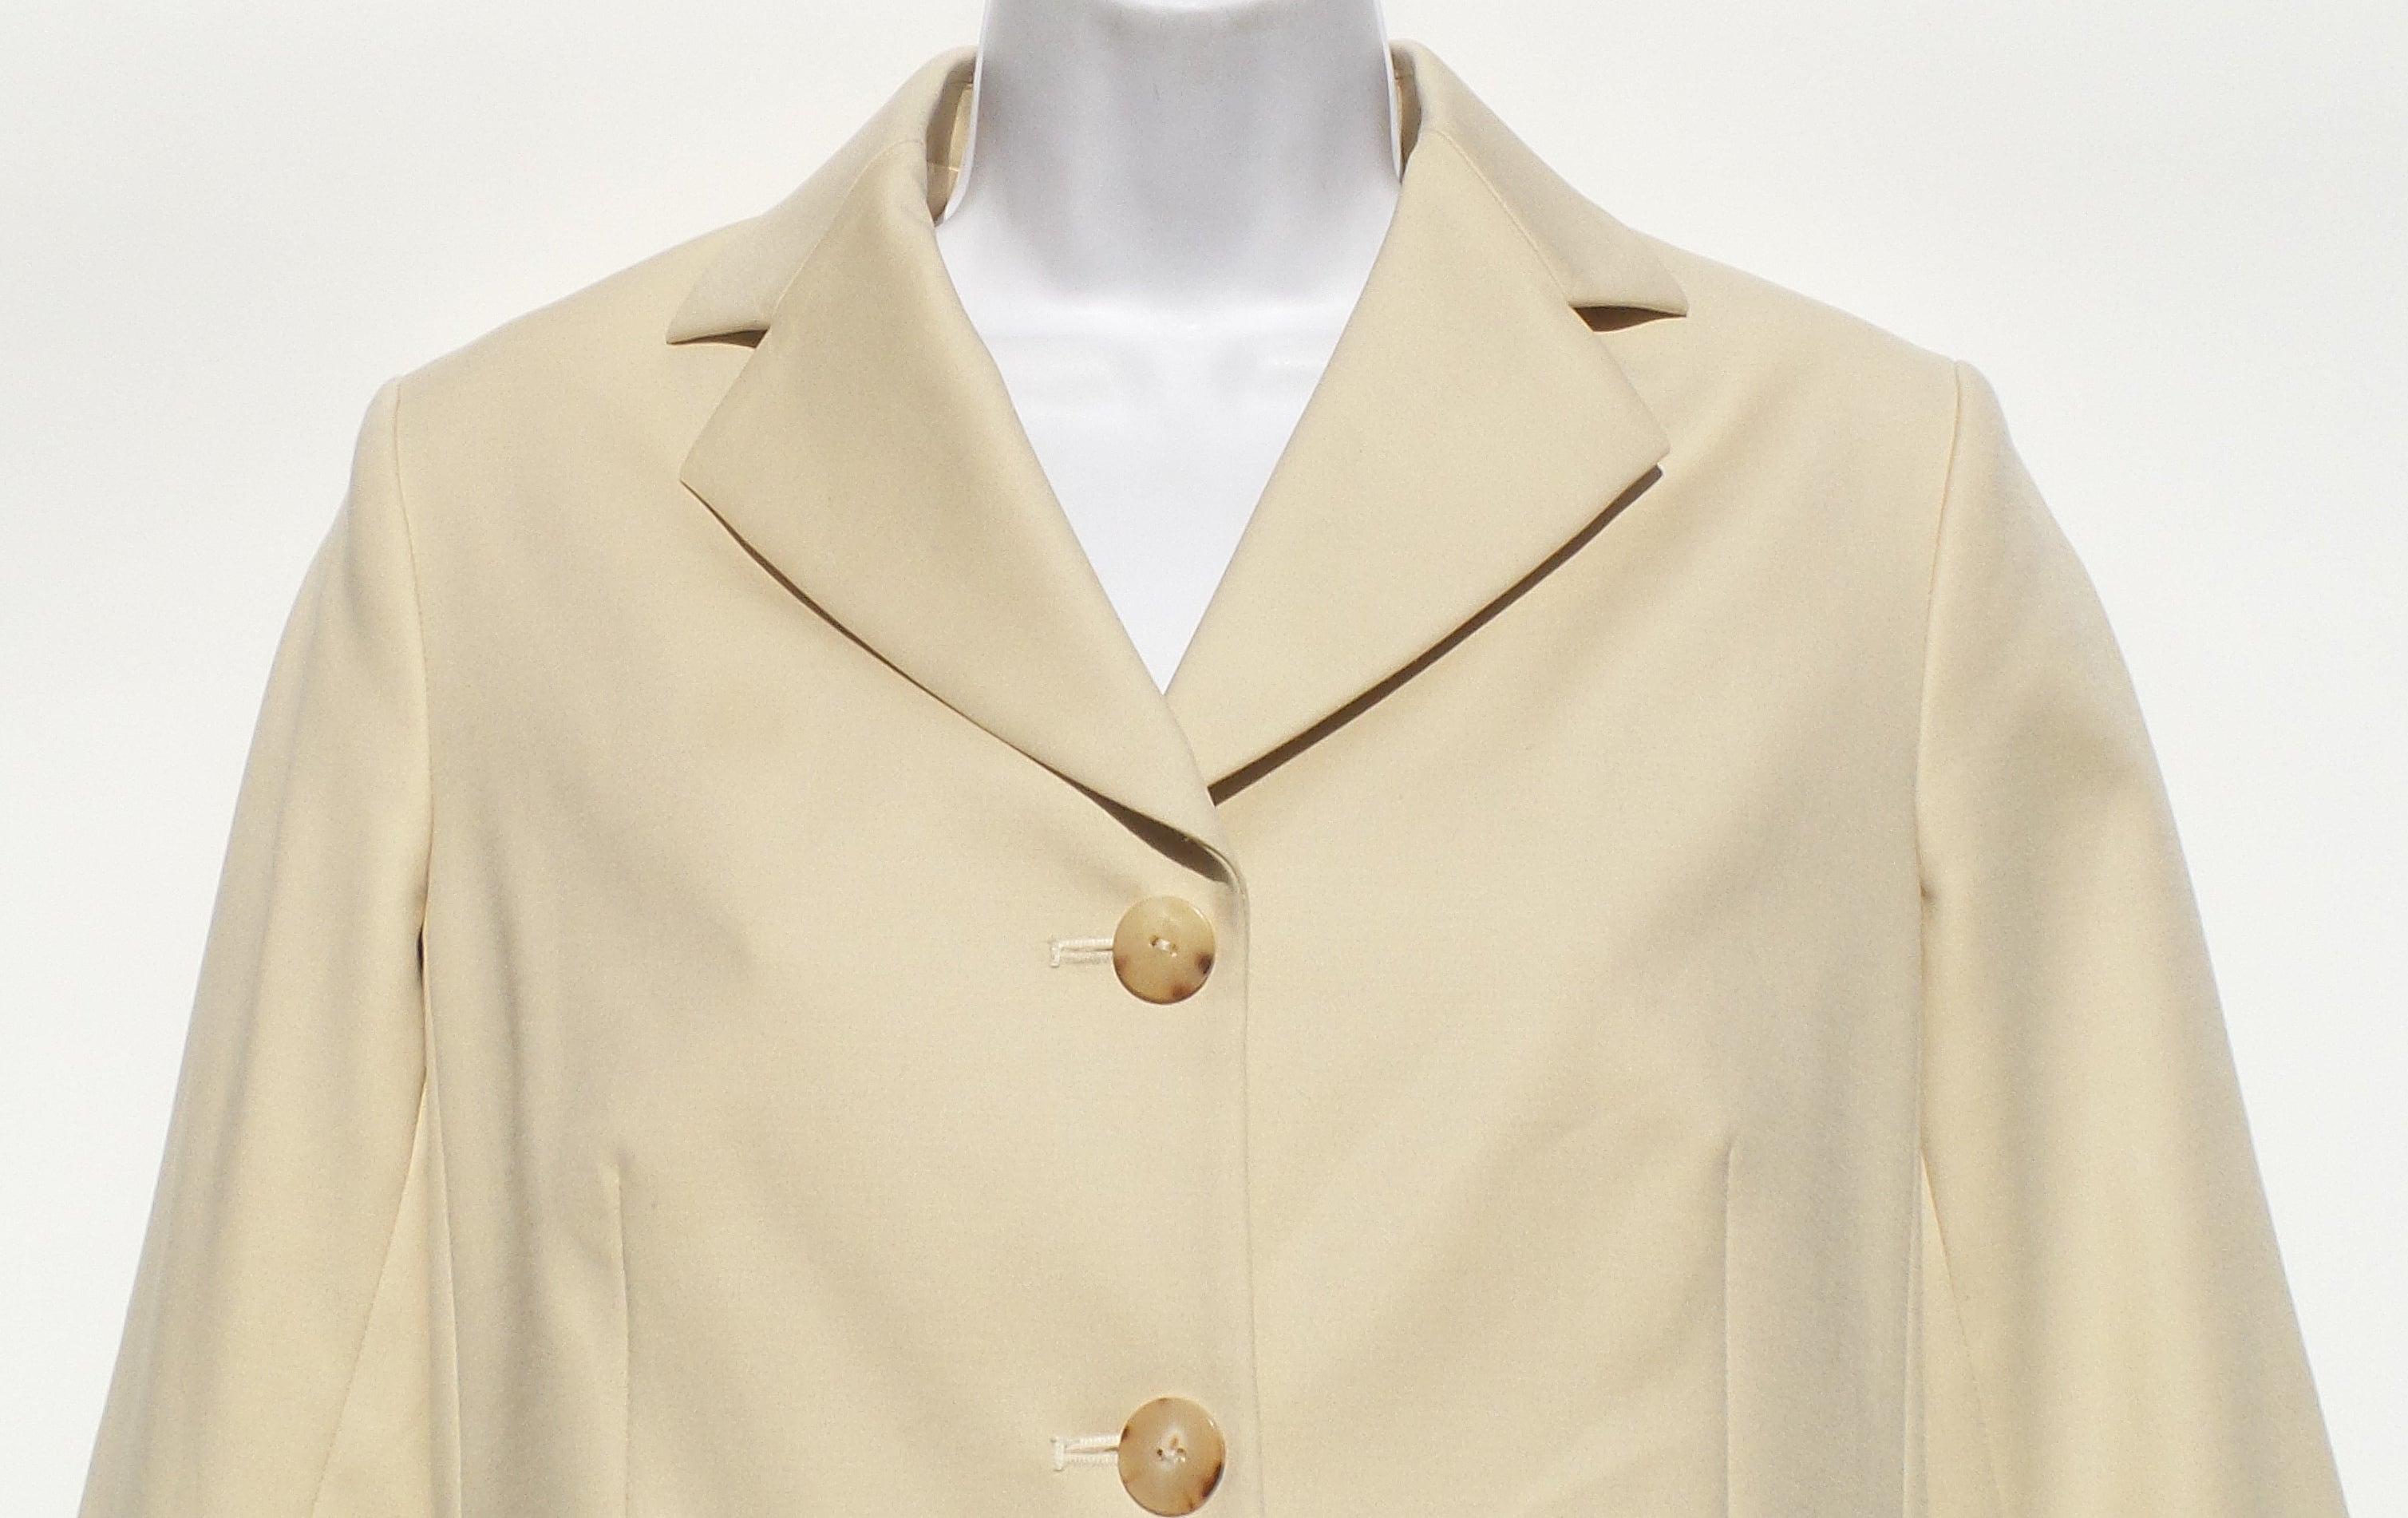 THE ROW Myram Light Beige Stretch Cotton Jacket Blazer 8 $1390